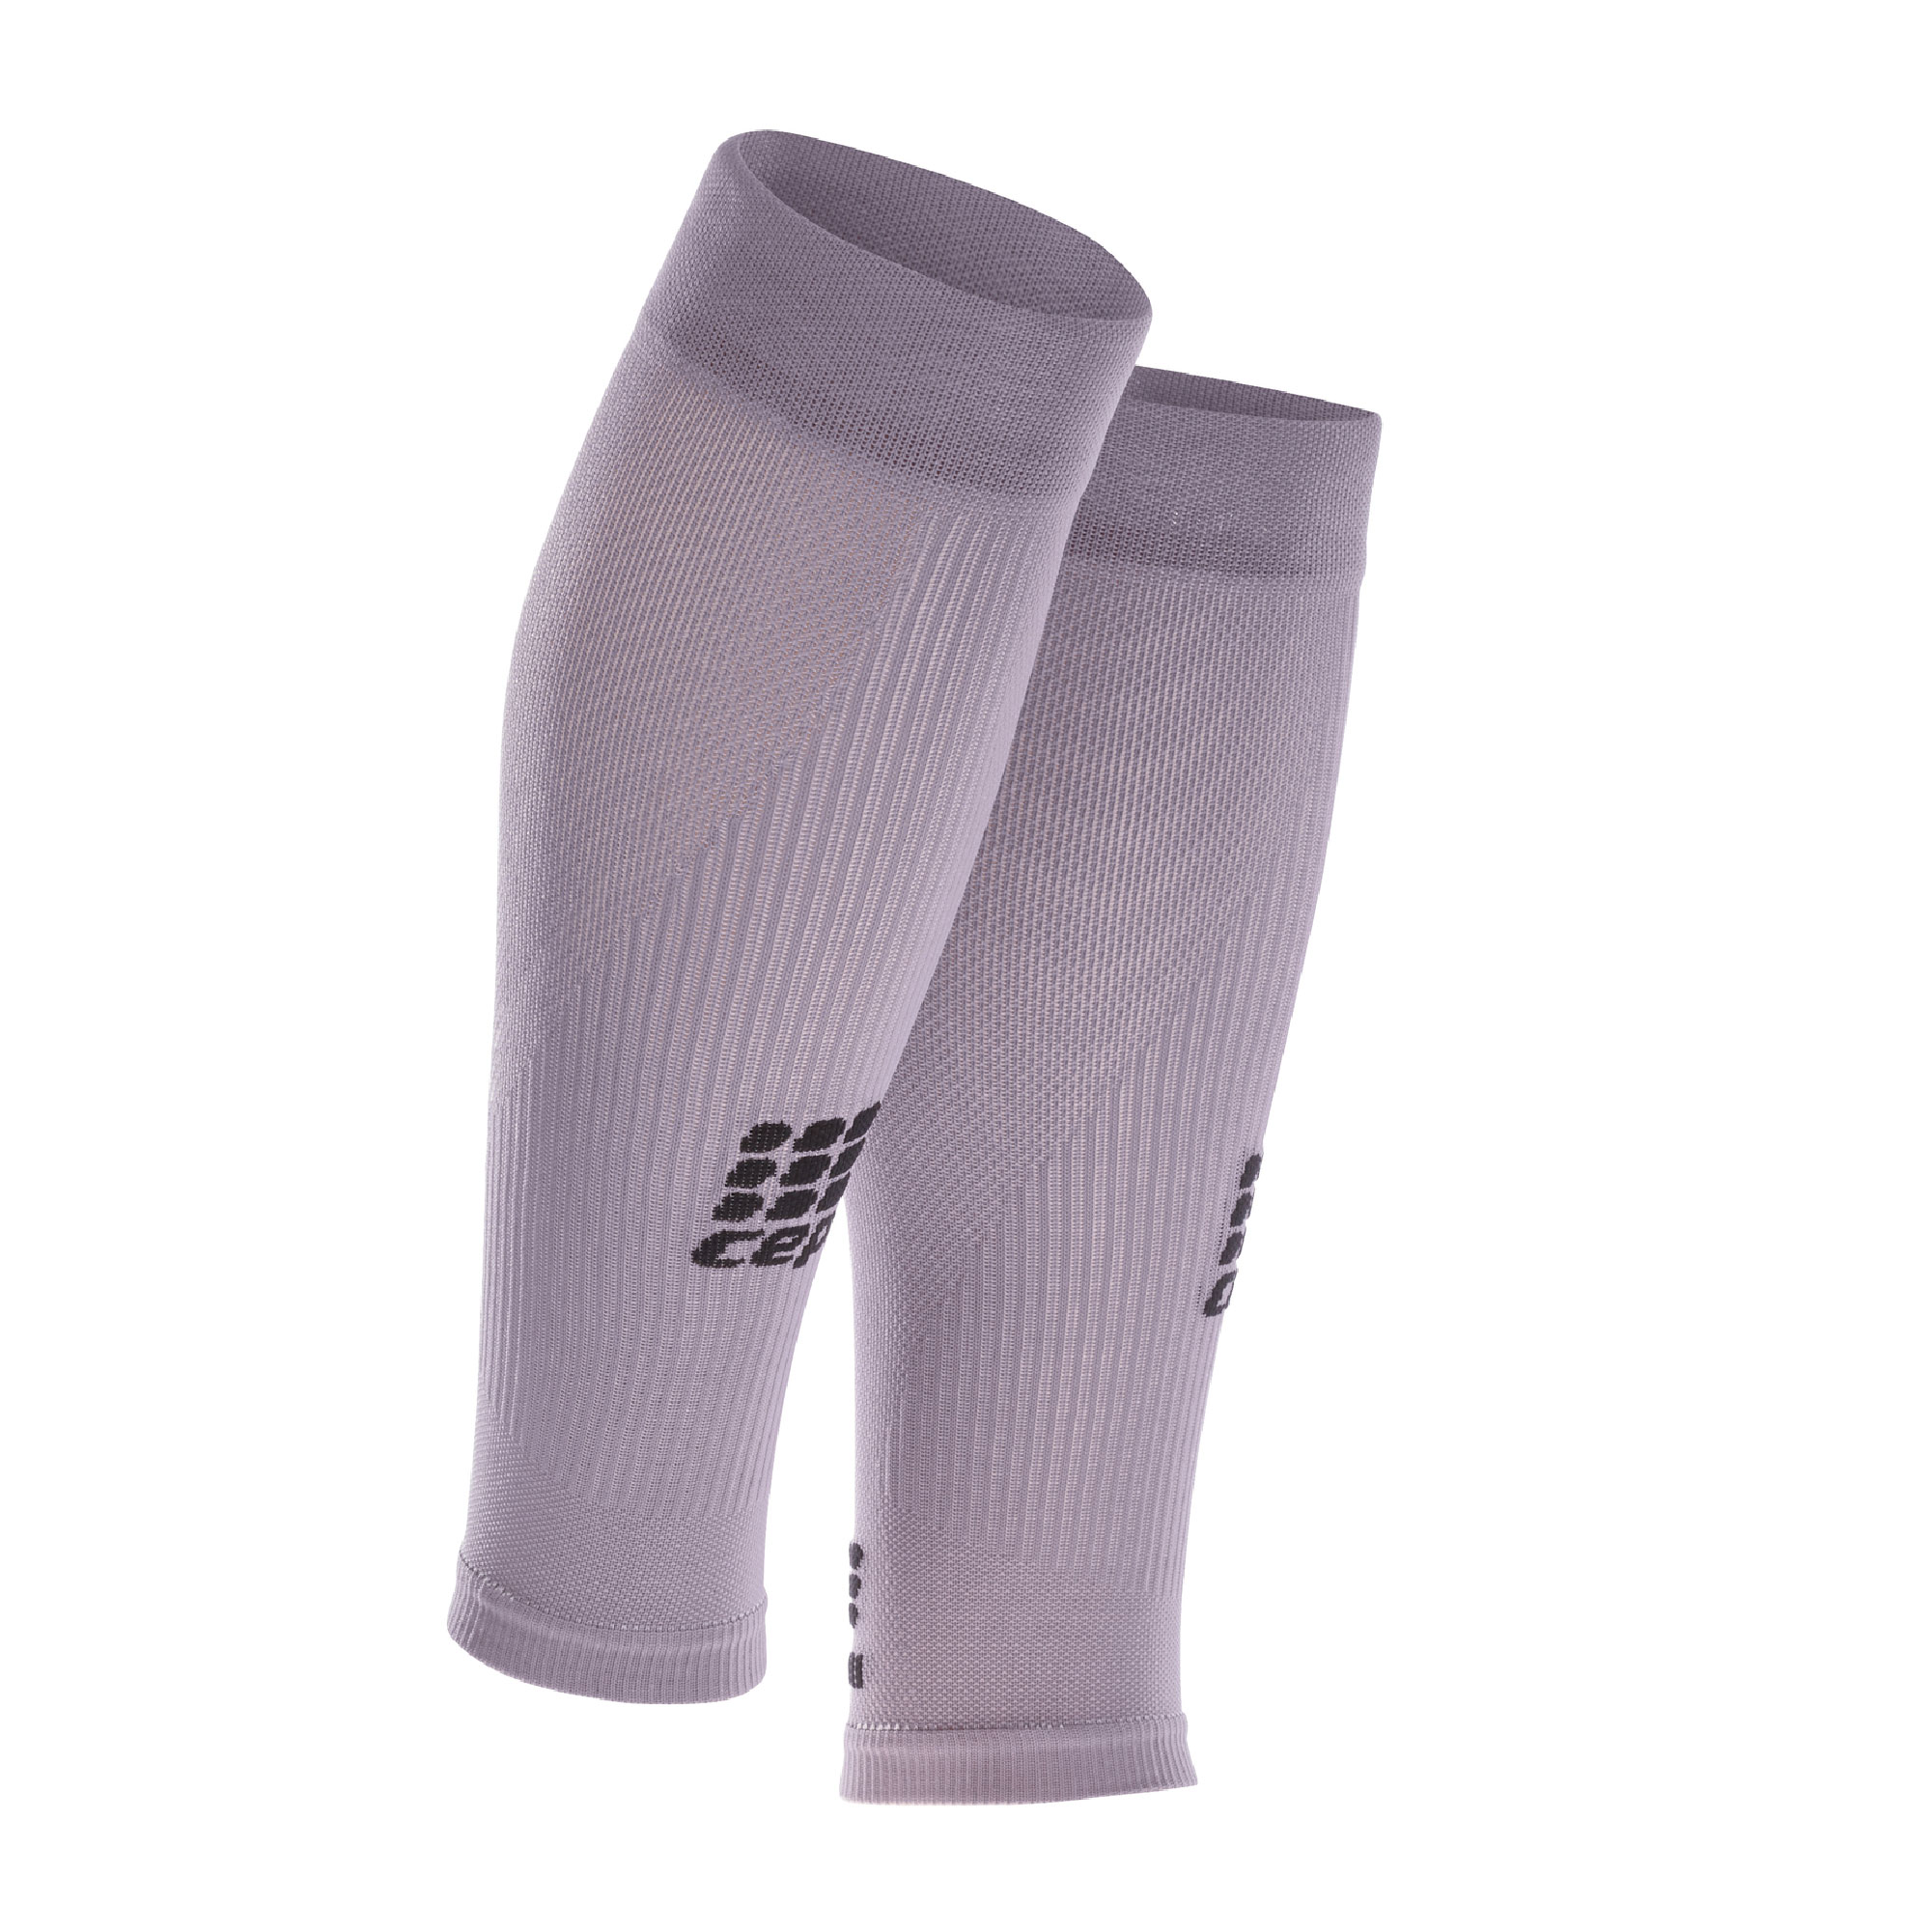 PASTEL CALF SLEEVES | WOMEN